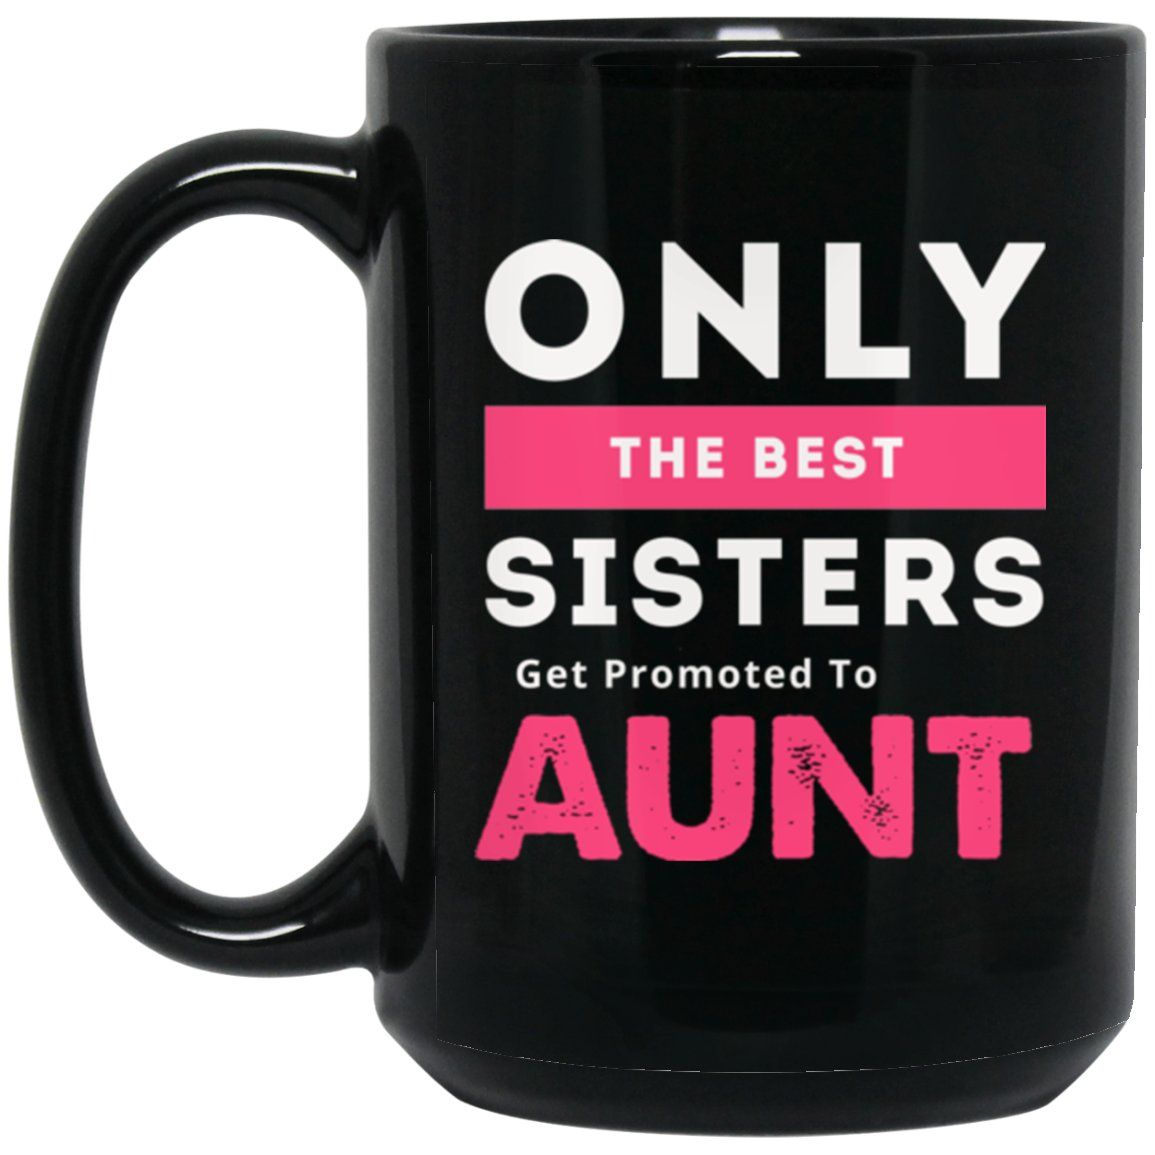 New Aunt Gift - Only The Best Sisters Get Promoted To Aunt Tee shirt Large Black Mug